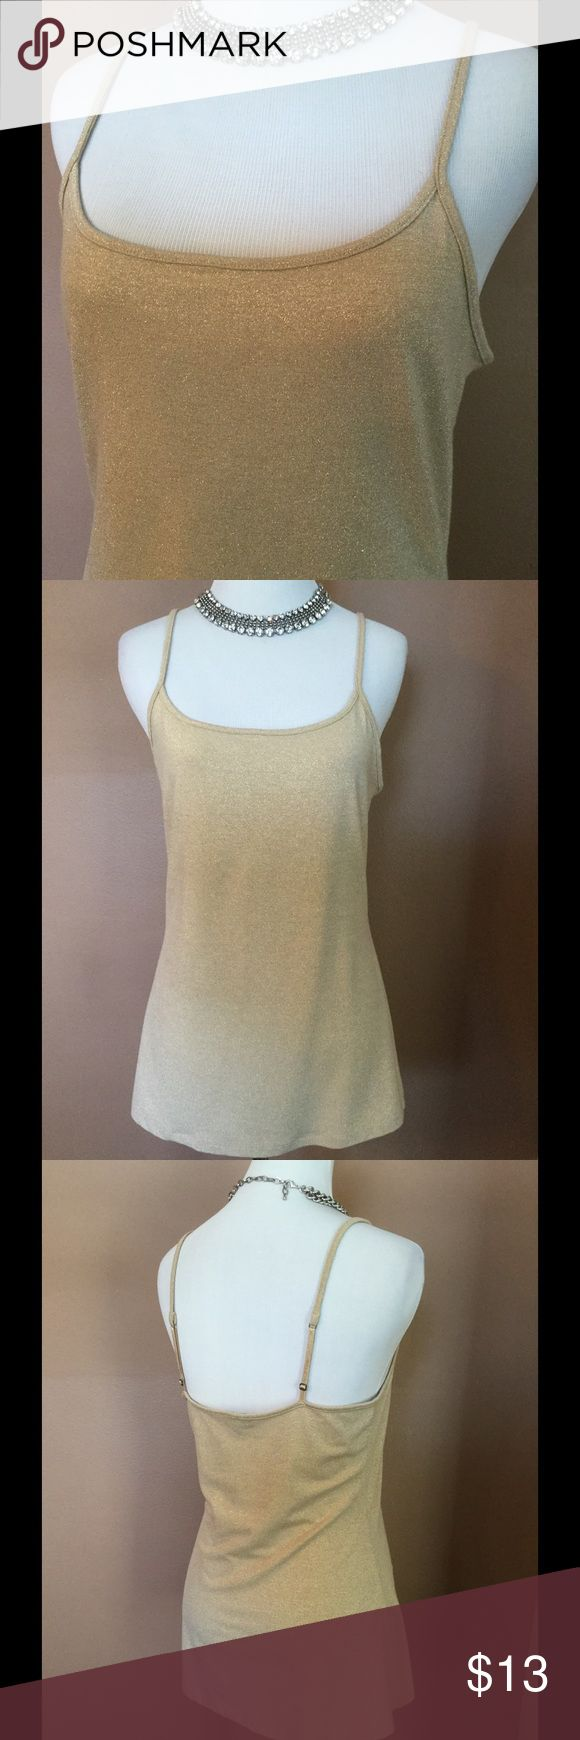 🆕 Express Gold Metallic Cami Top ! ⭐️  Express Gold Metallic Top ! Adjustable straps ! Great to dress up or wear with jeans ! Hand wash ! Excellent condition ! Beautiful ! ⭐️ Express Tops